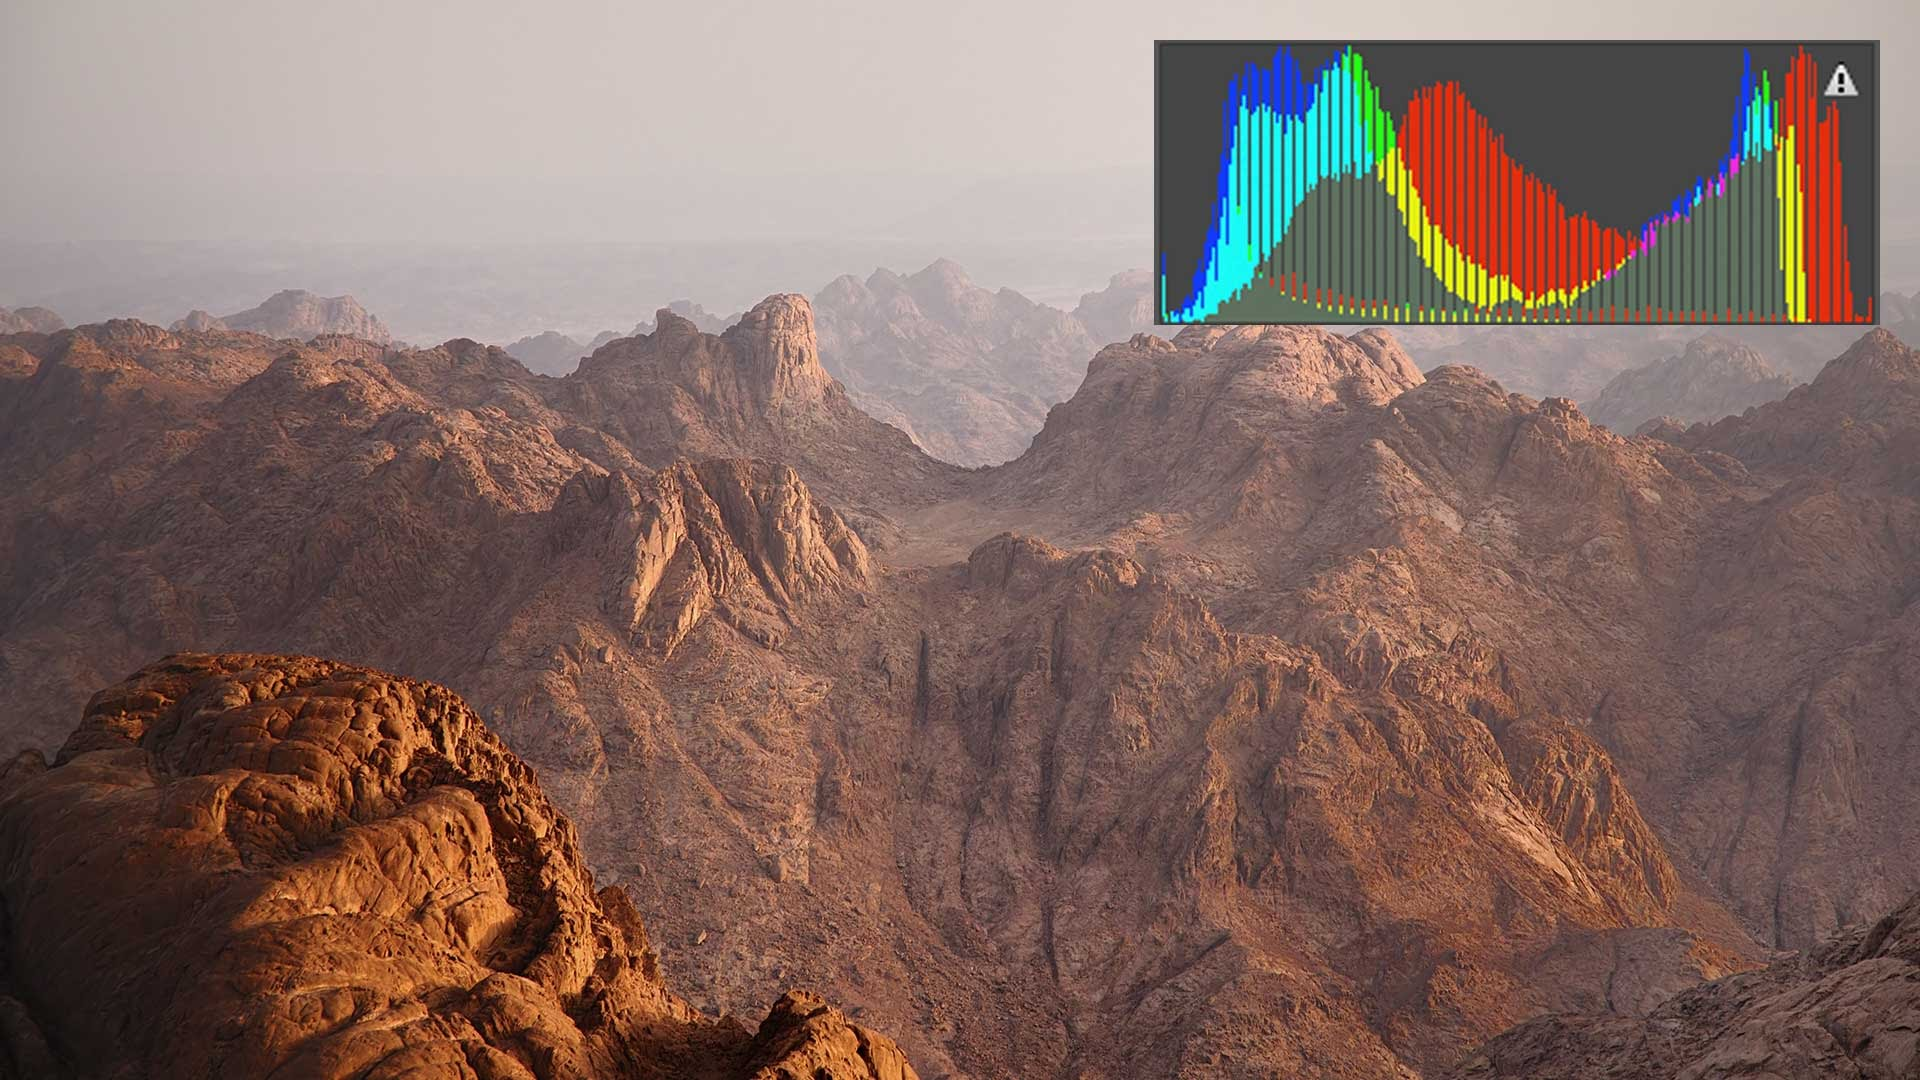 Getting the Perfect Exposure - How to Use the Histogram in Photoshop